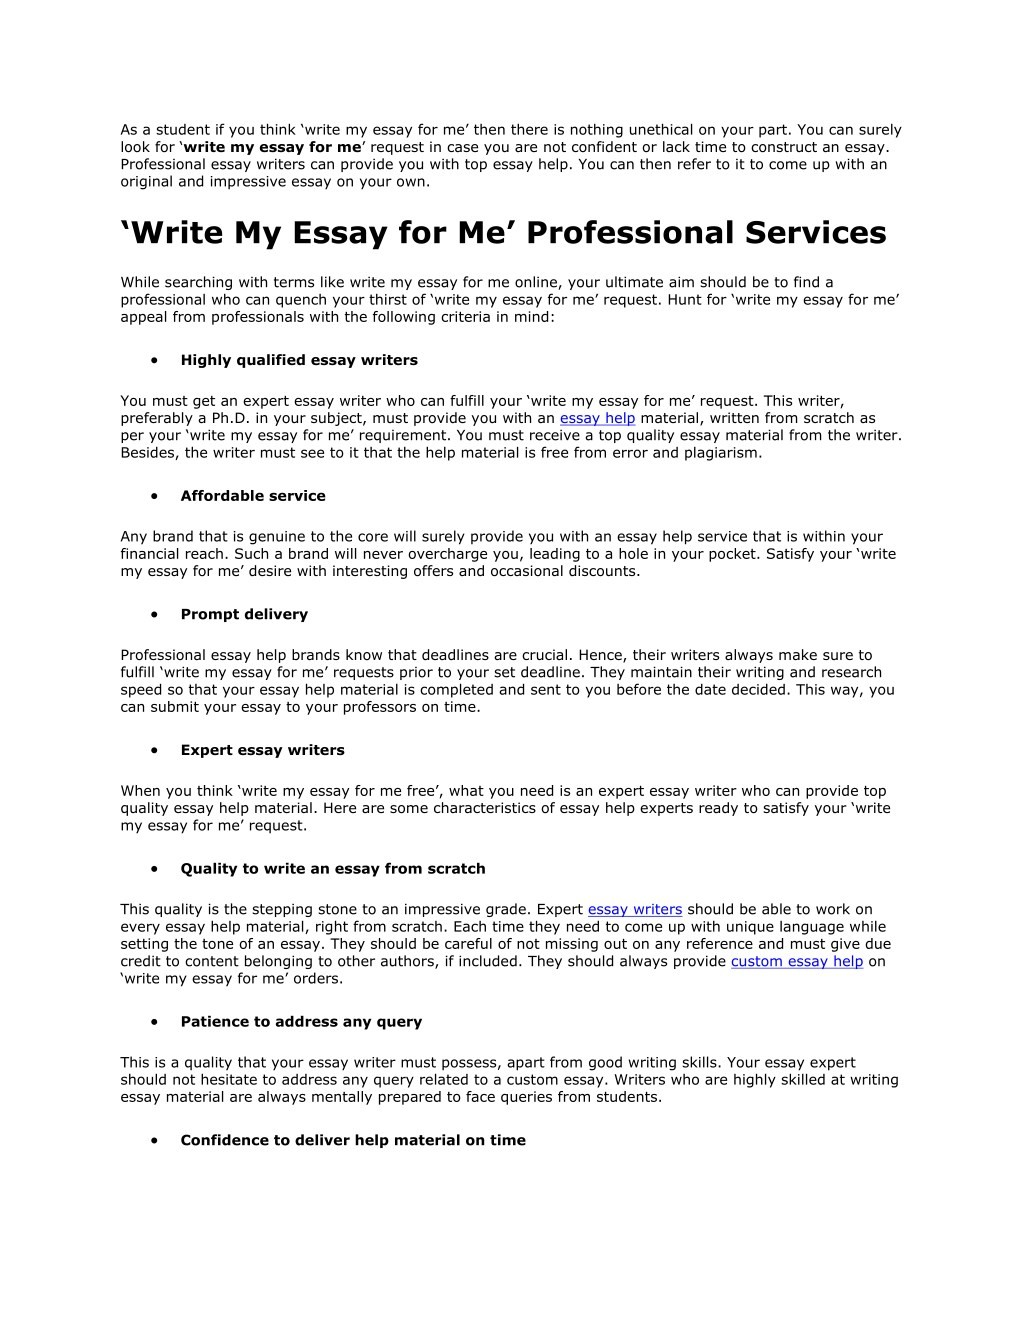 017 Write My Essay For Me Example As Student If You Think Surprising Free College Online Large